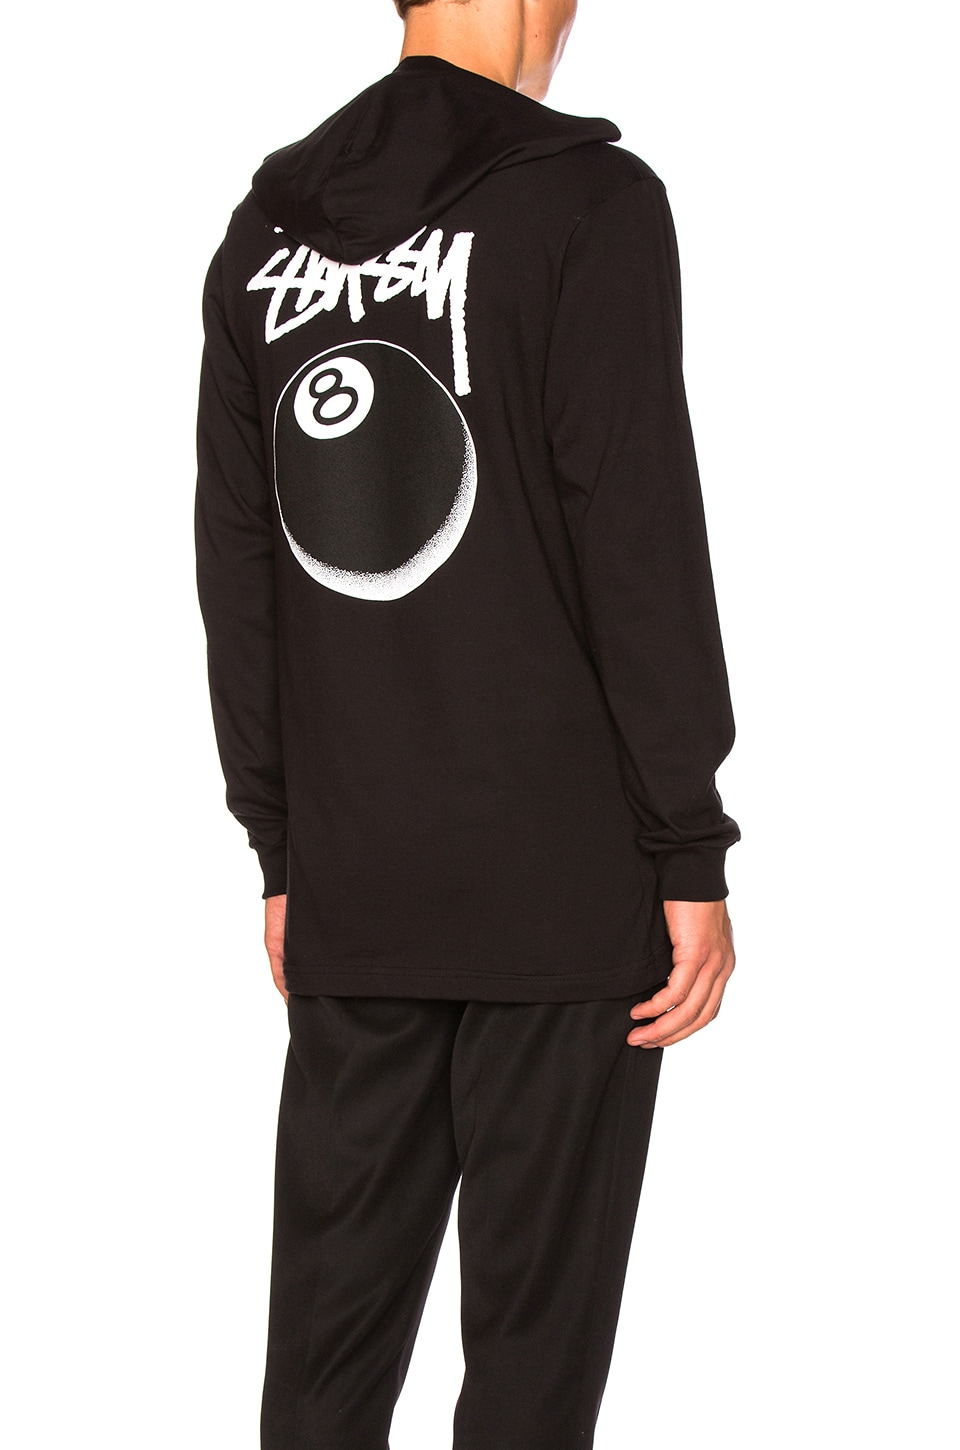 Photo of 8 Ball Stipple Hooded Tee by Stussy men clothes